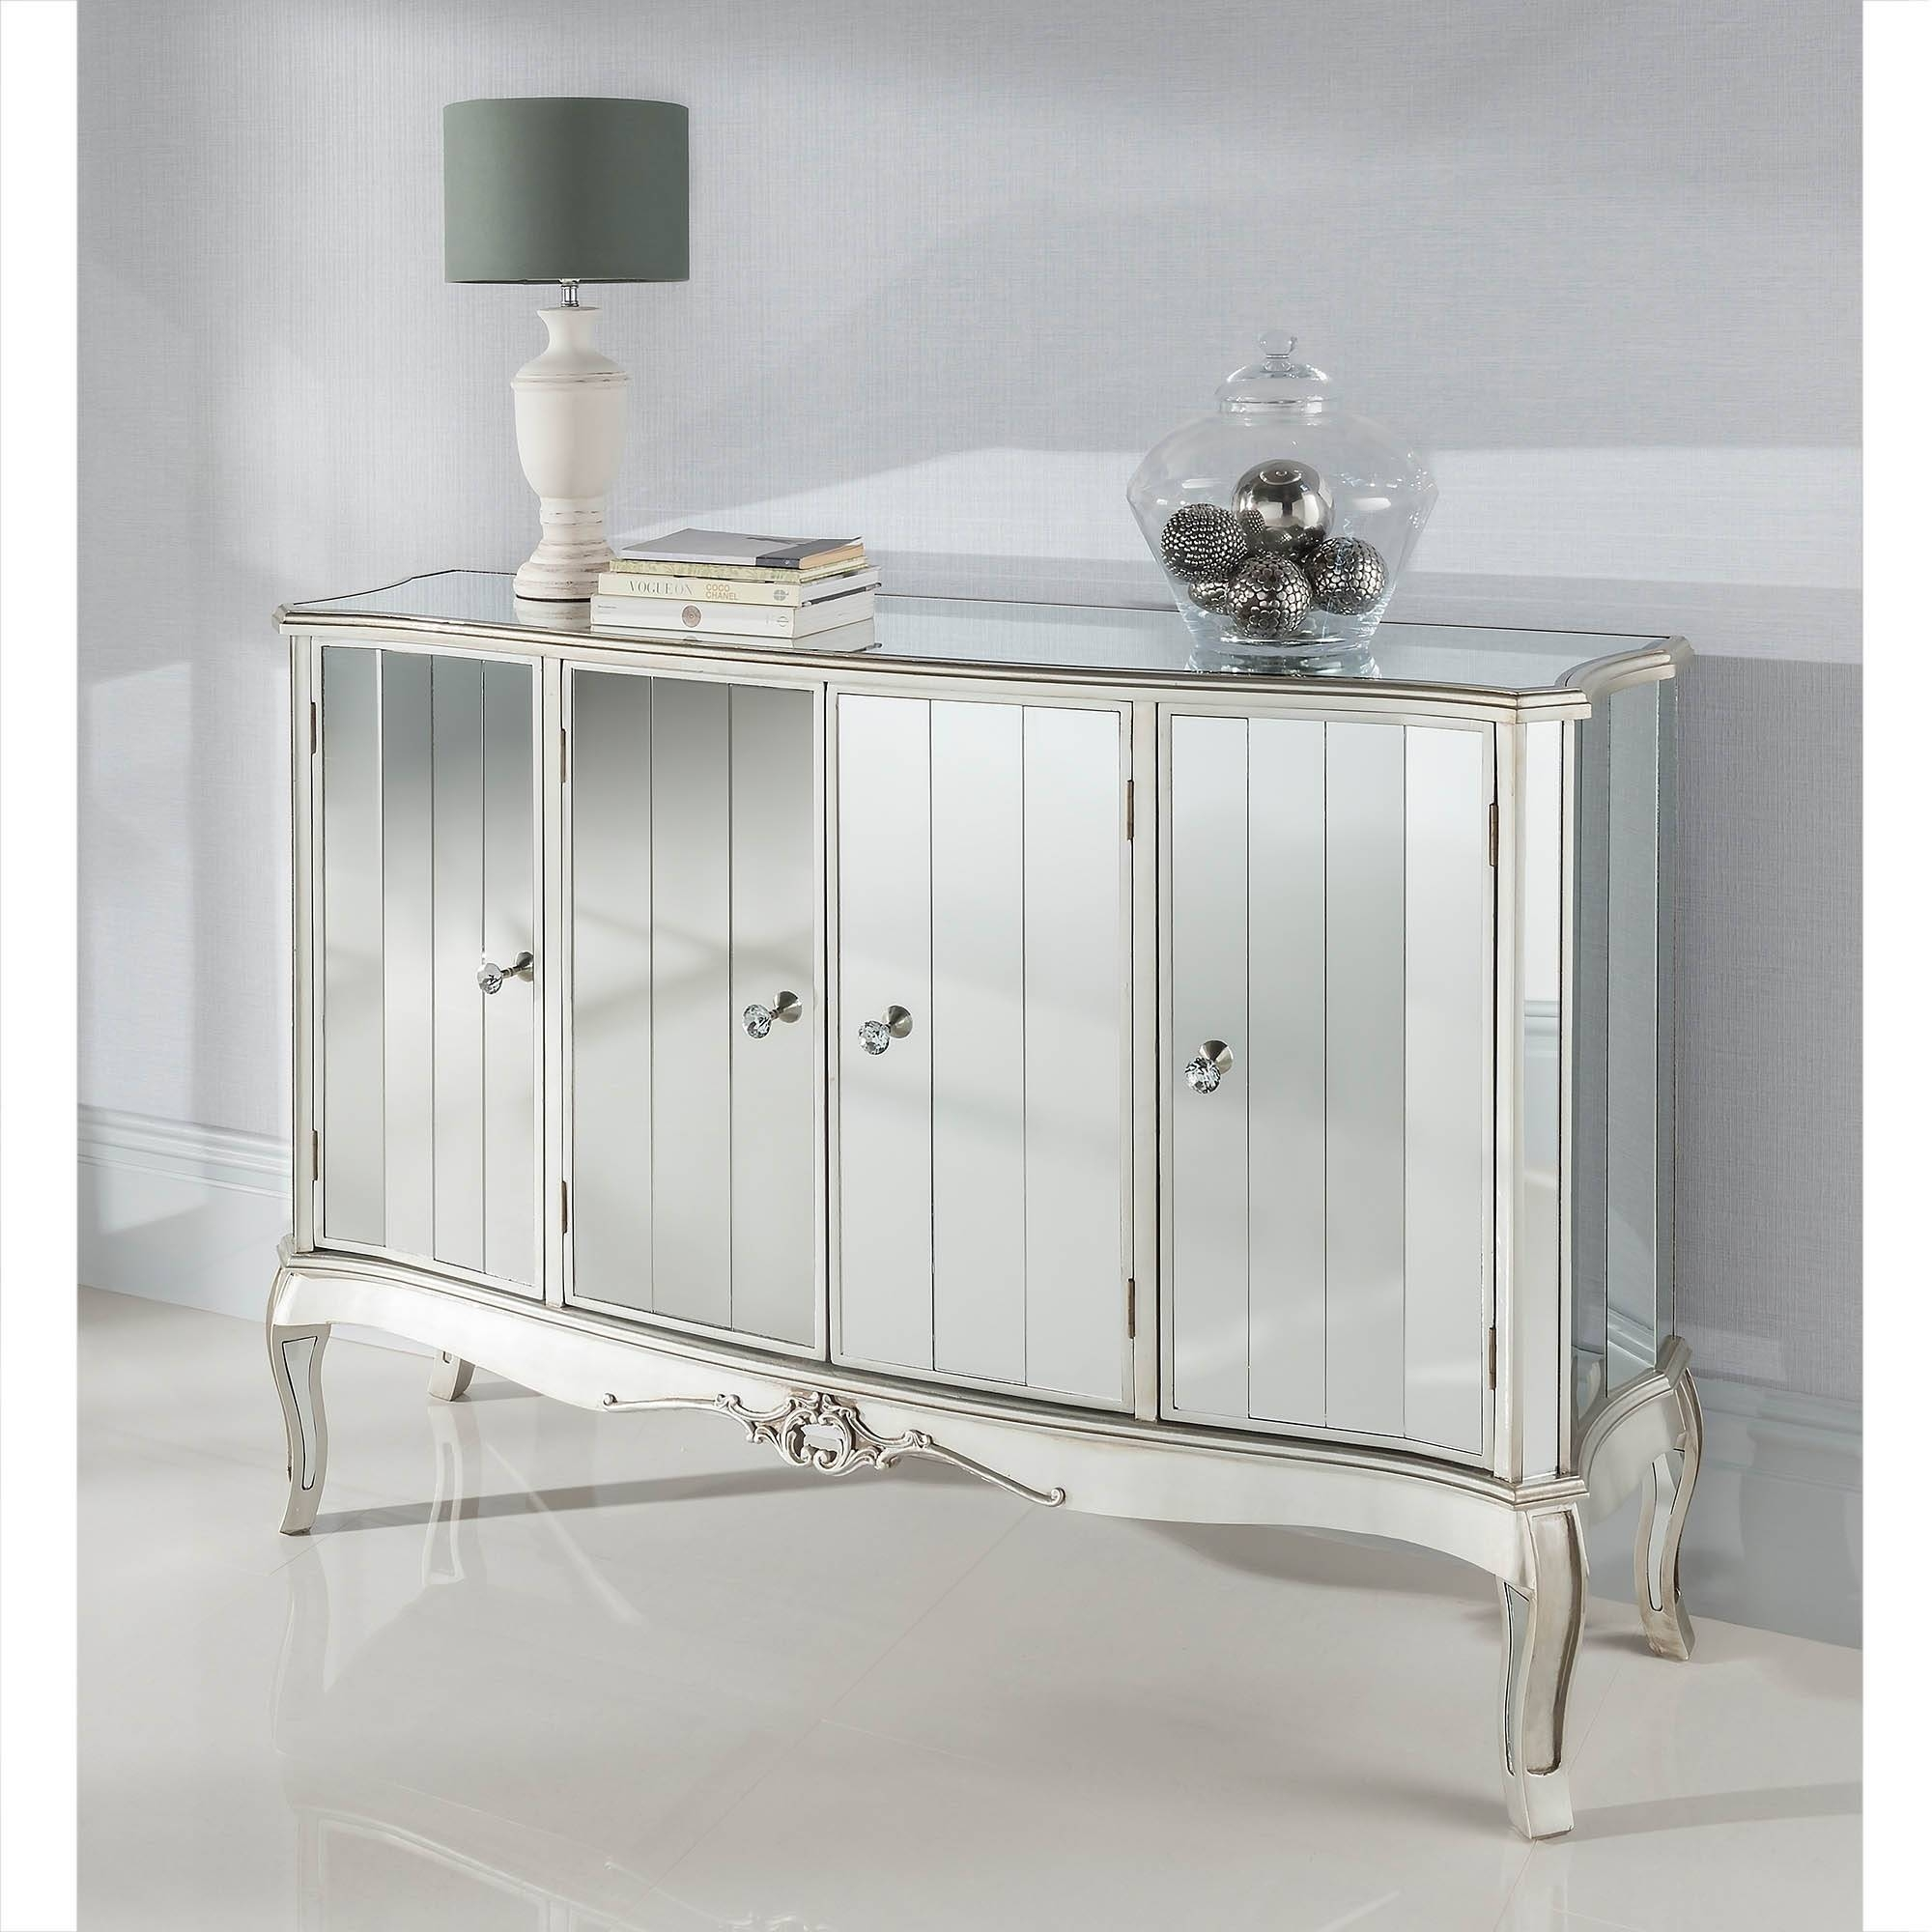 Argente Mirrored Four Door Sideboard | Mirrored Furniture within White Mirrored Sideboards (Image 1 of 30)